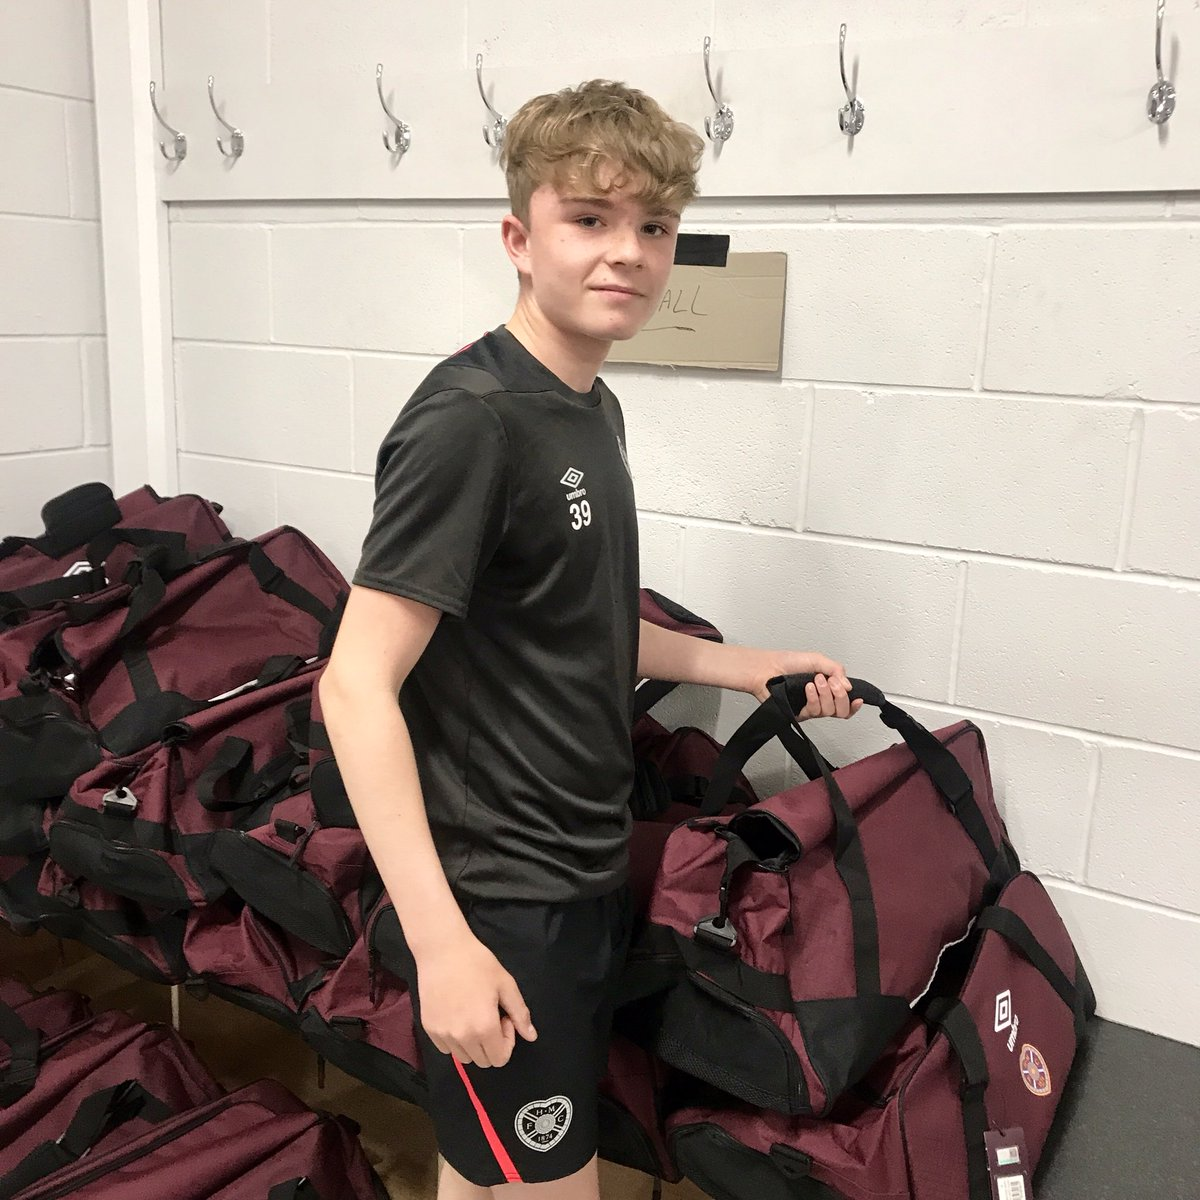 Callum Flatman turned down an opportunity to sign for Tottenham Hotspur